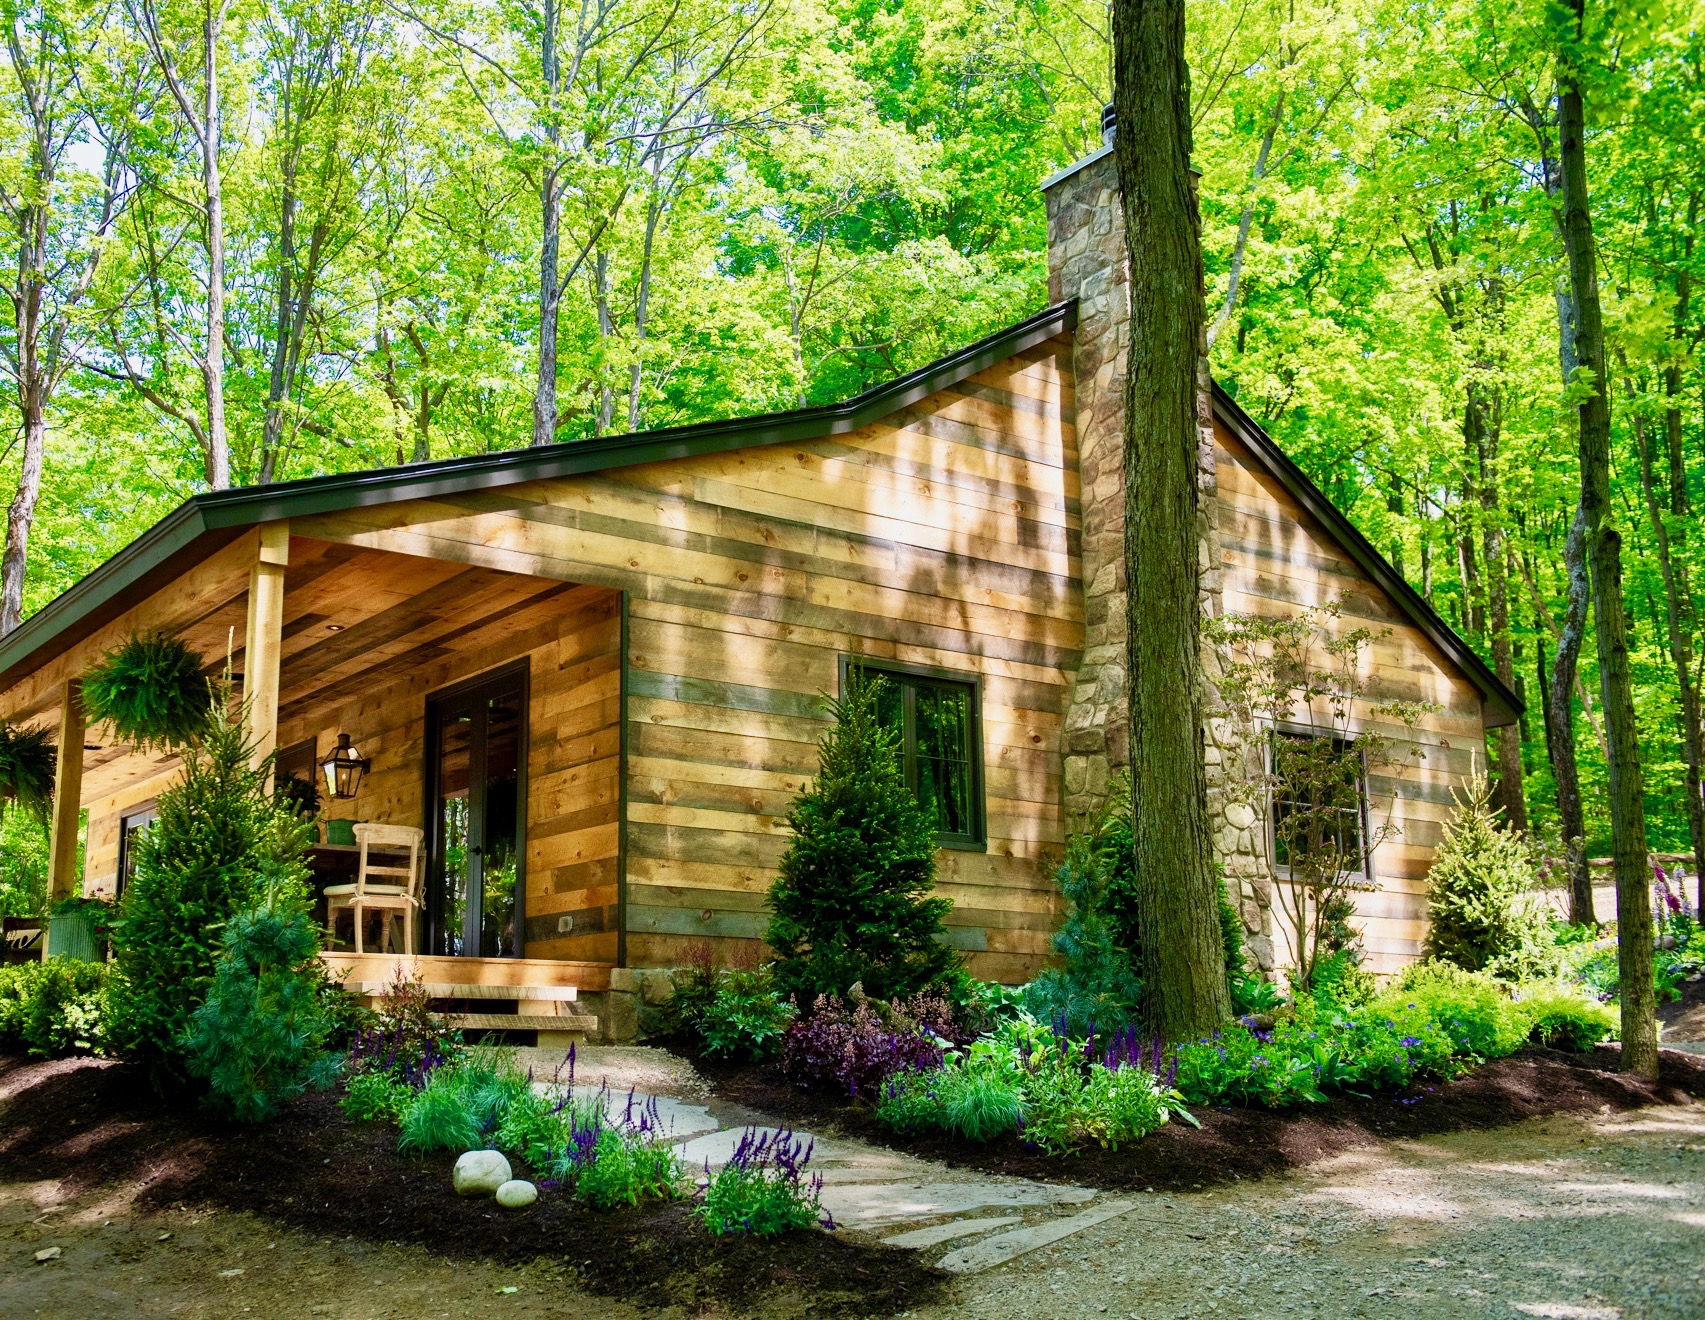 The Lodge At June Farms Cabins For Rent In West Sand Lake New York United States